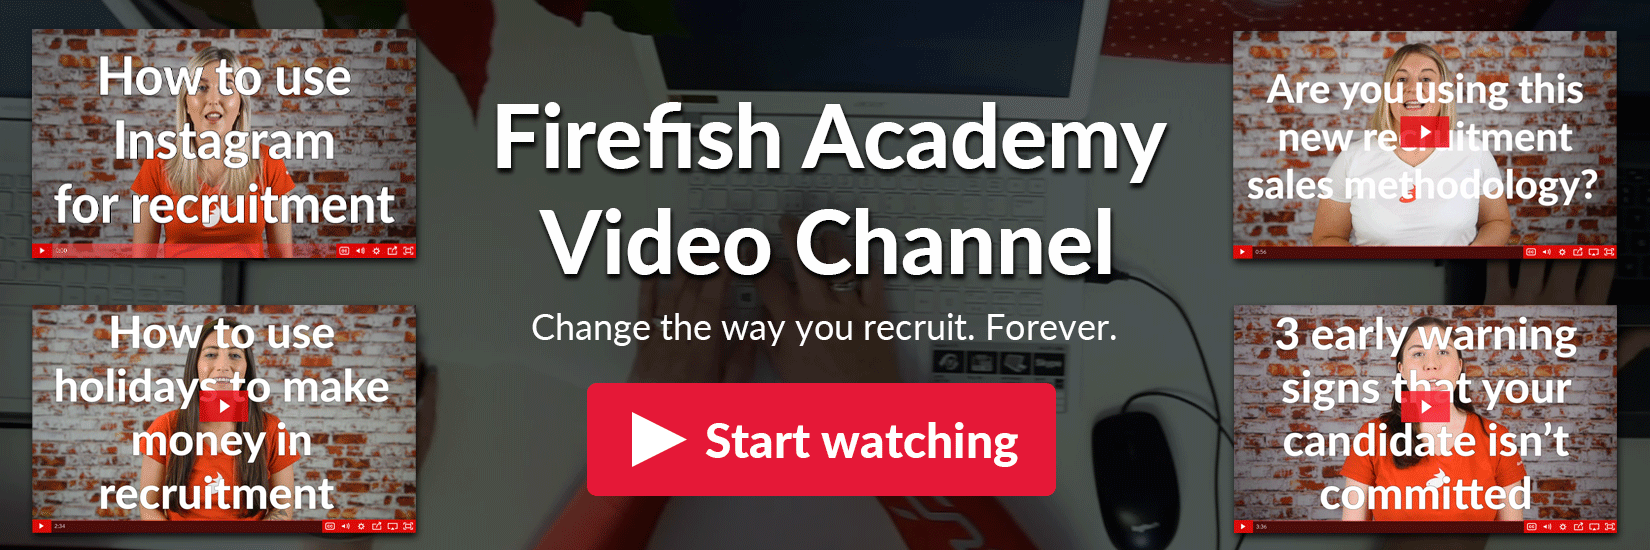 firefish academy video channel